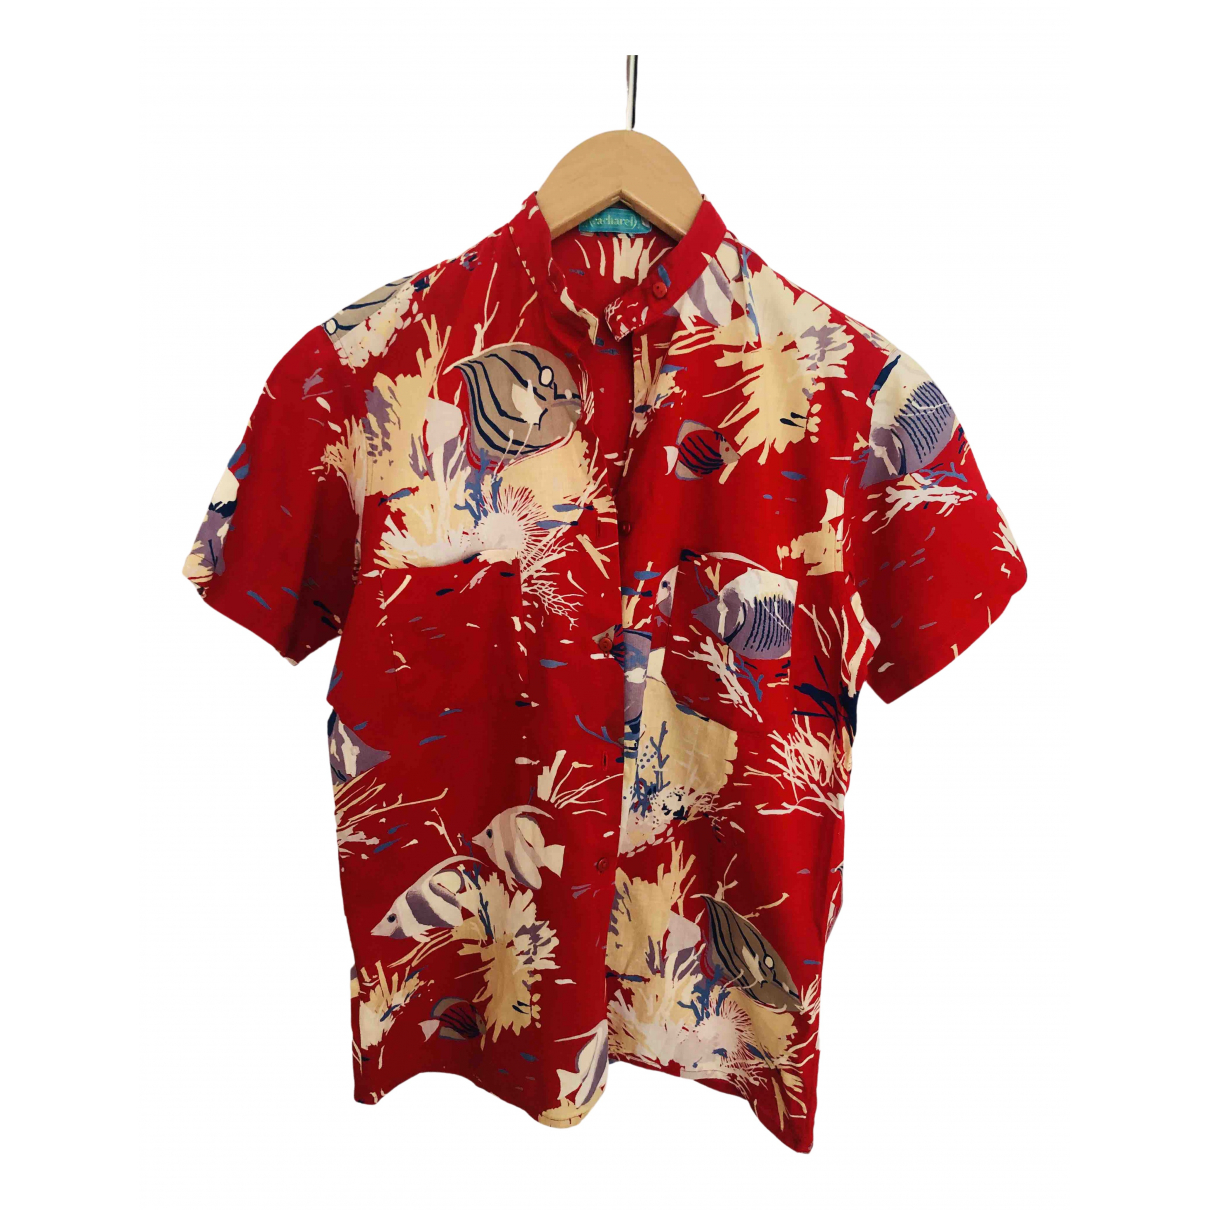 Cacharel N Red Cotton Shirts for Men S International